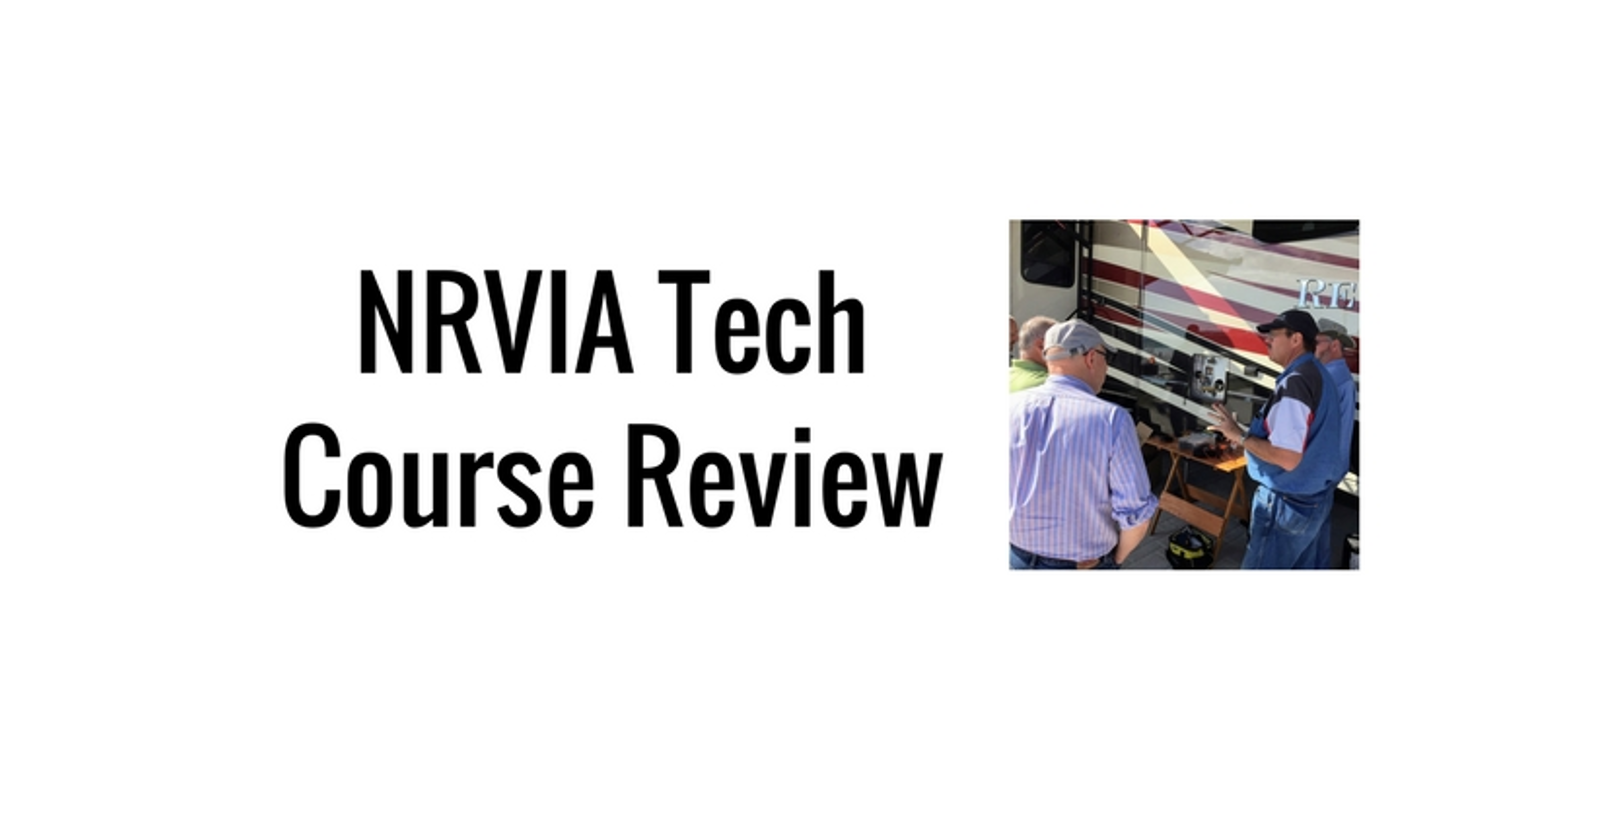 Want to Learn More About Your RV? The NRVIA RV Tech Course May Be Right For You!